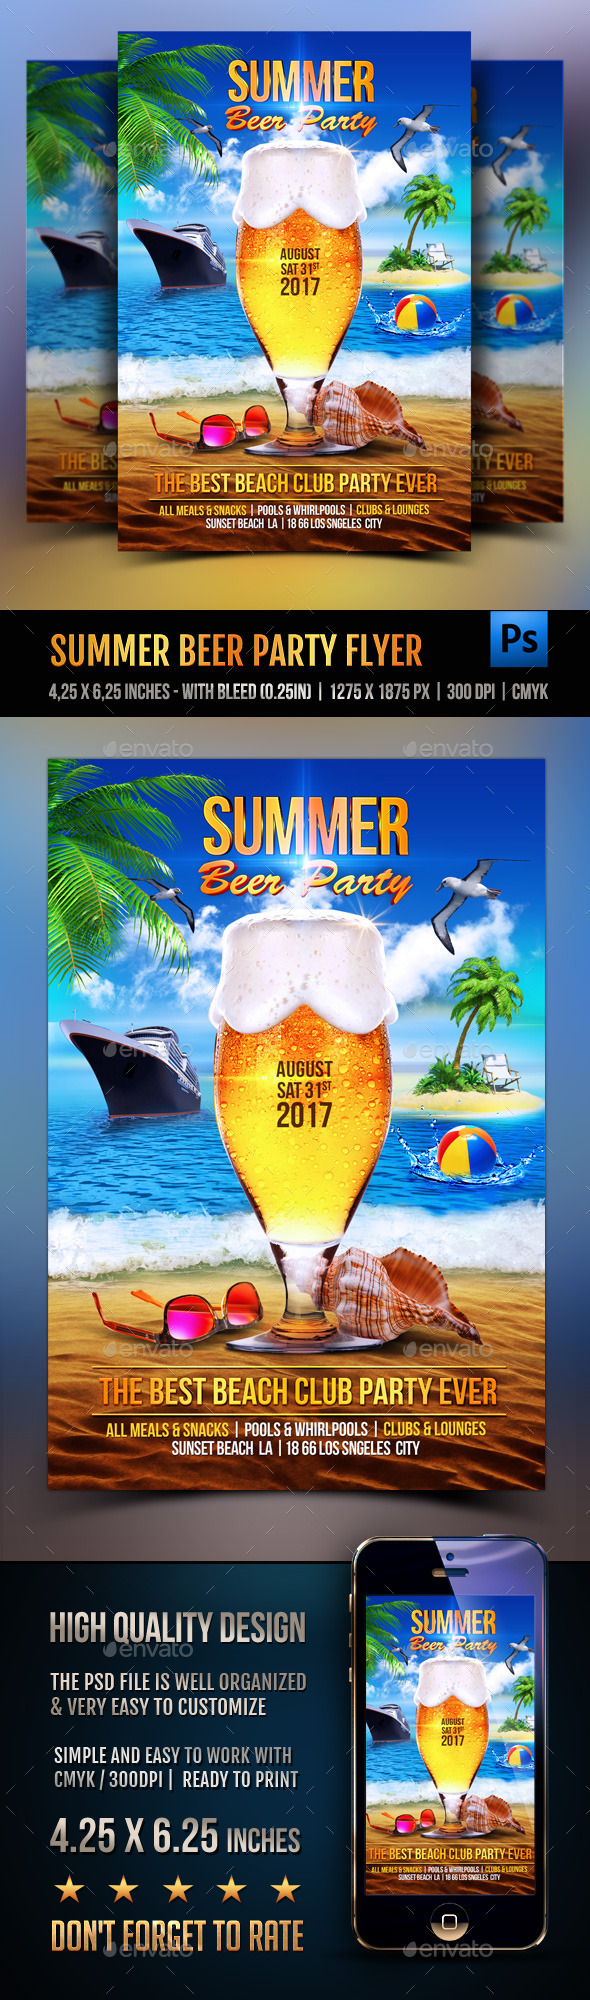 Summer Beer Party Flyer - Clubs & Parties Events